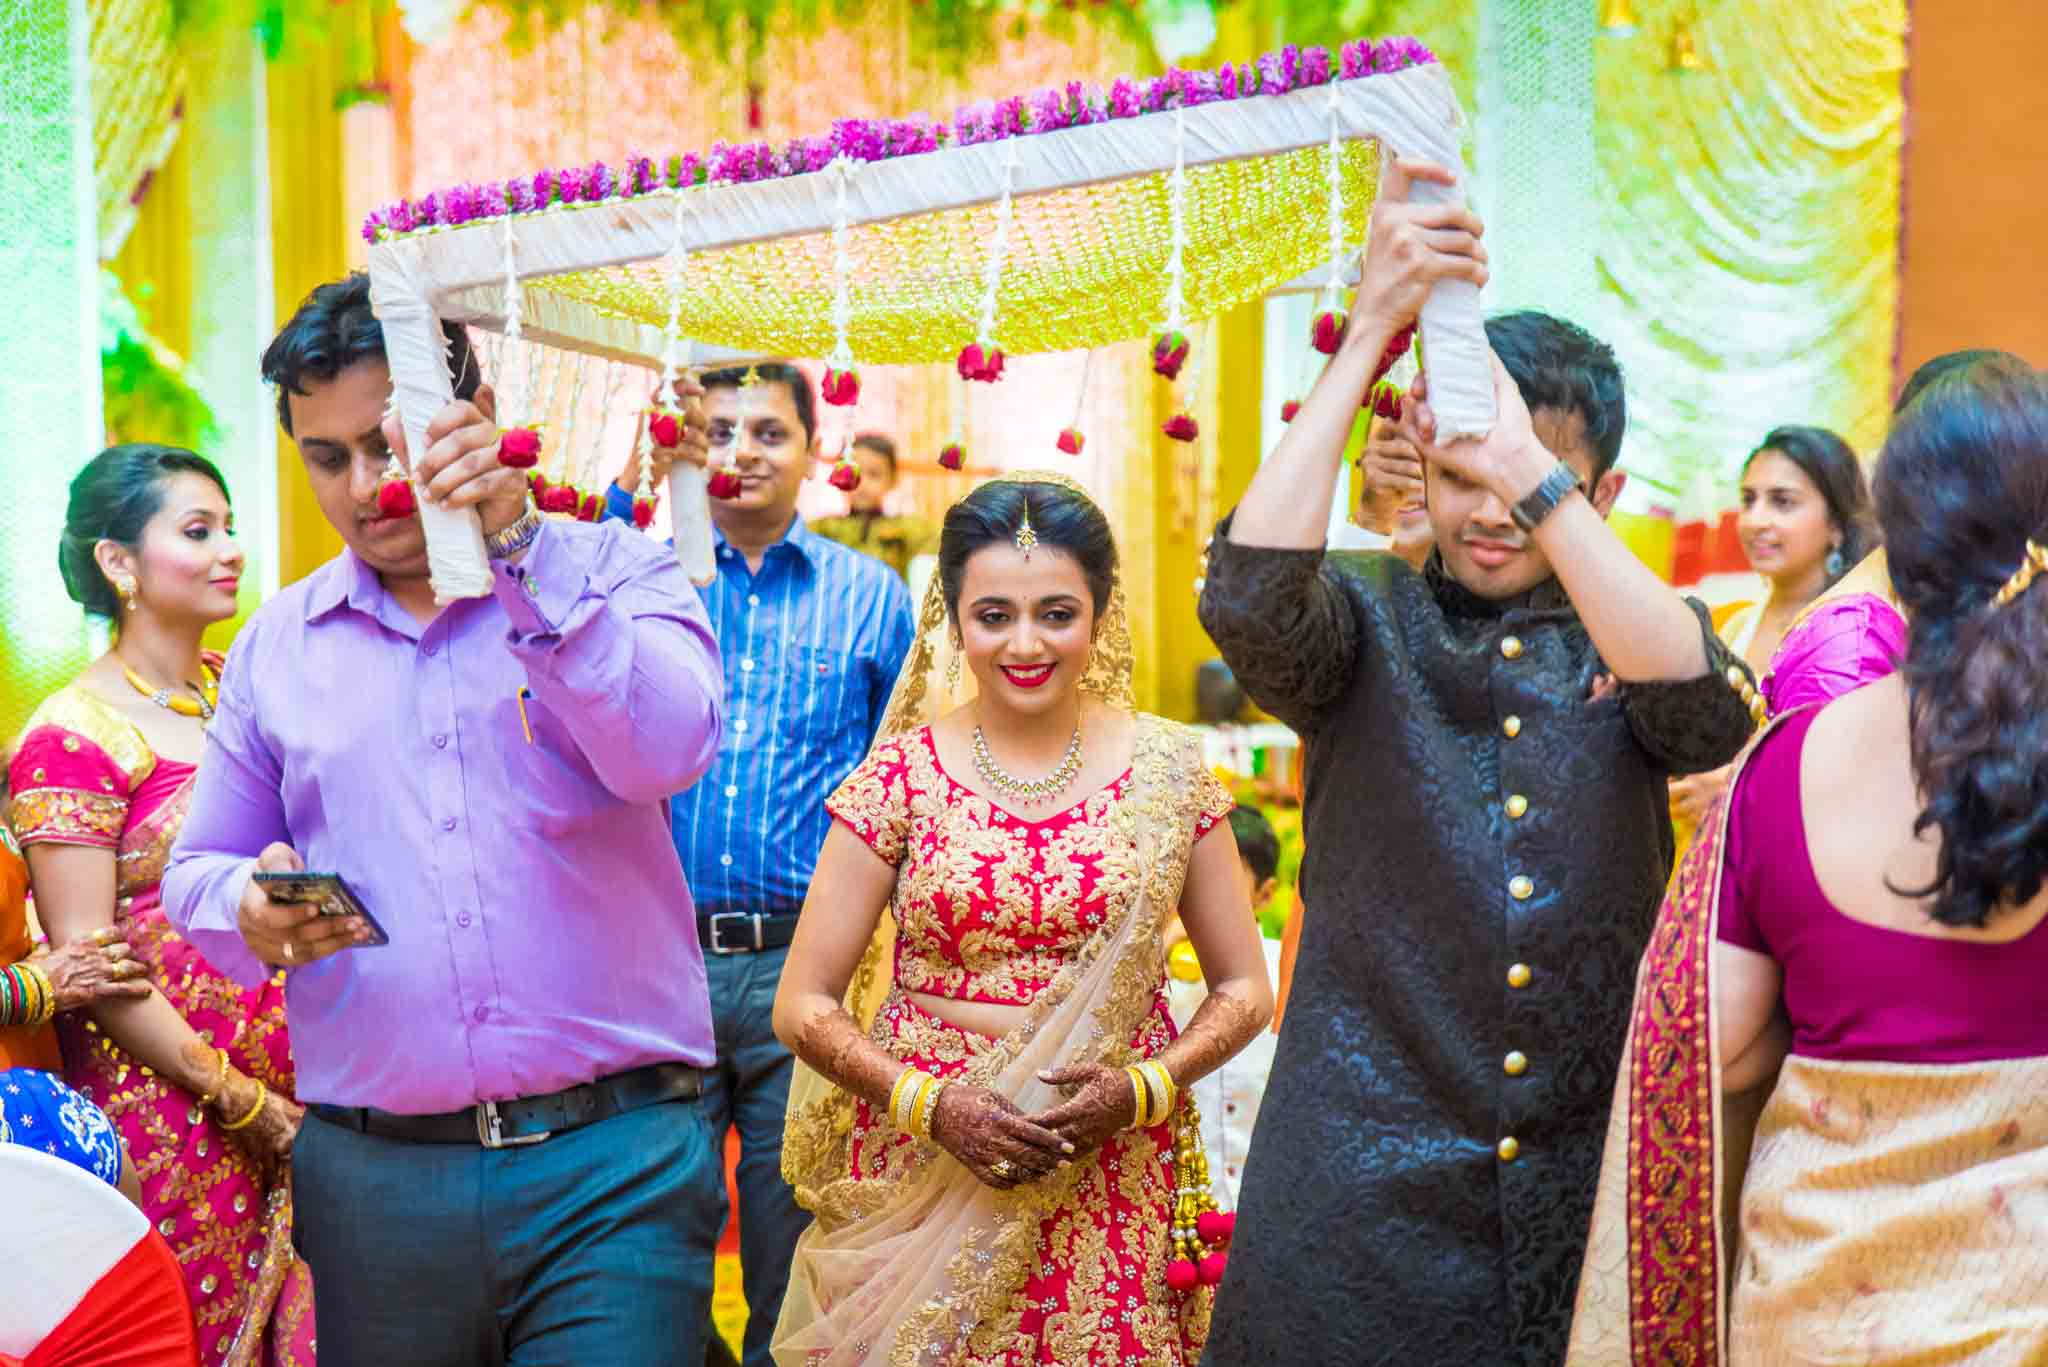 mumbai-candid-photography-wedding-whatknot-kamal-amrohi-studios-31